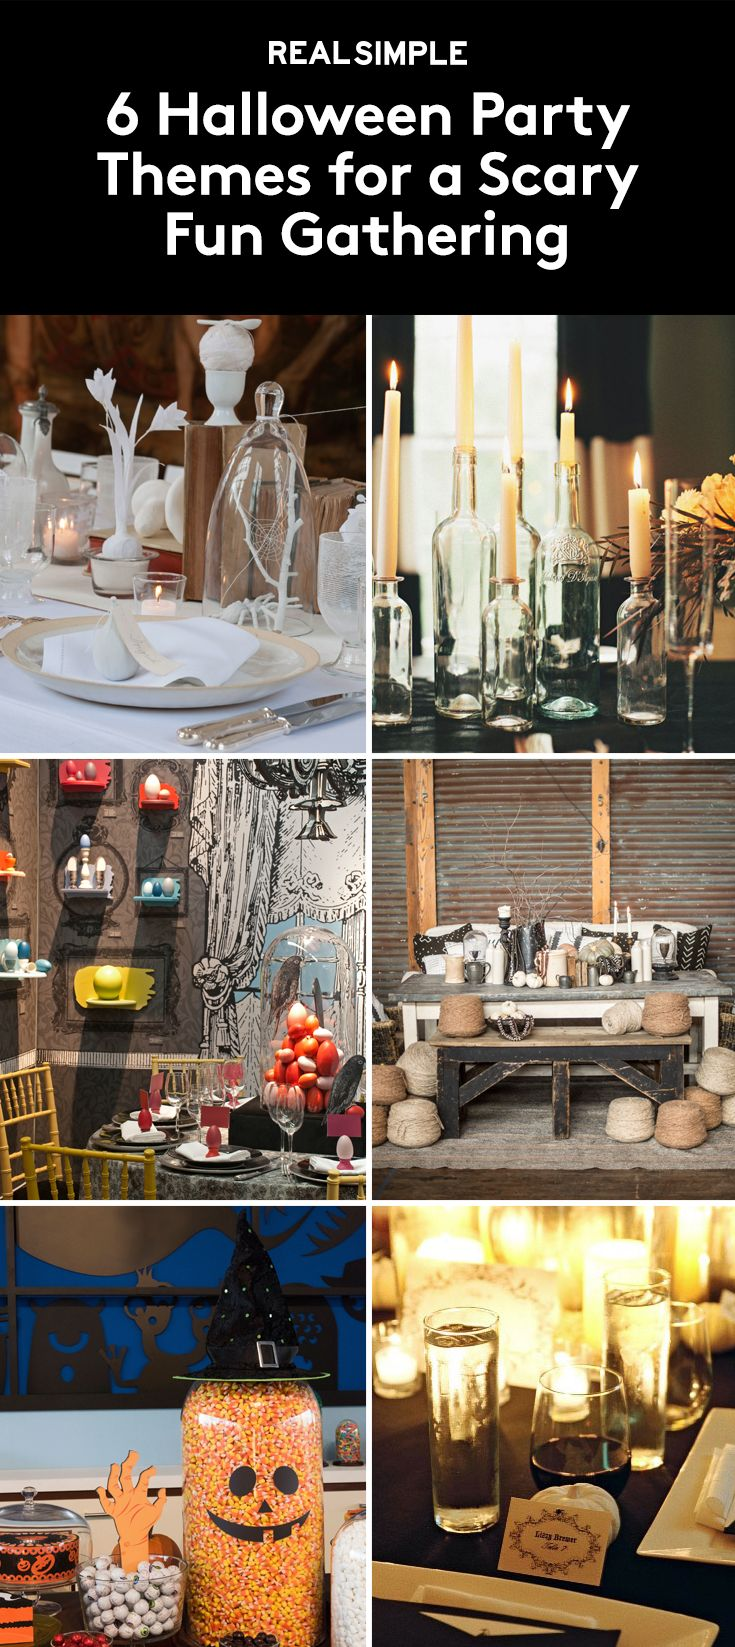 6 Halloween Party Themes for a Scary Fun Gathering | If you're planning to host a Halloween bash this year, why not think a little outside the box? And by box, we mean the traditional orange and black color scheme, spiders and fake cobwebs on the walls, cauldrons filled with dry ice, and yards and yards of creepy cloth.